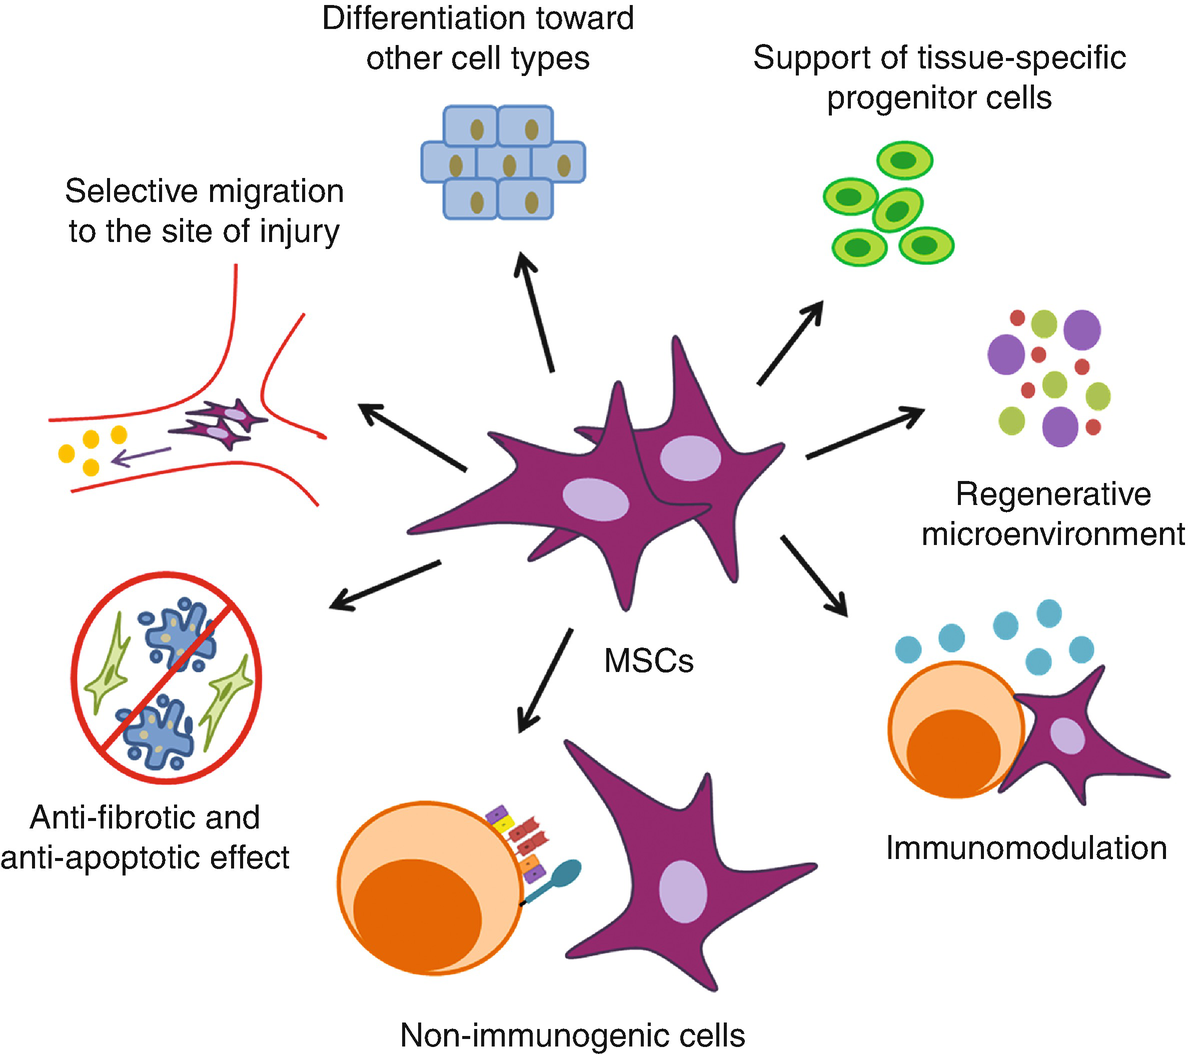 Cell Therapy Using Extraocular Mesenchymal Stem Cells